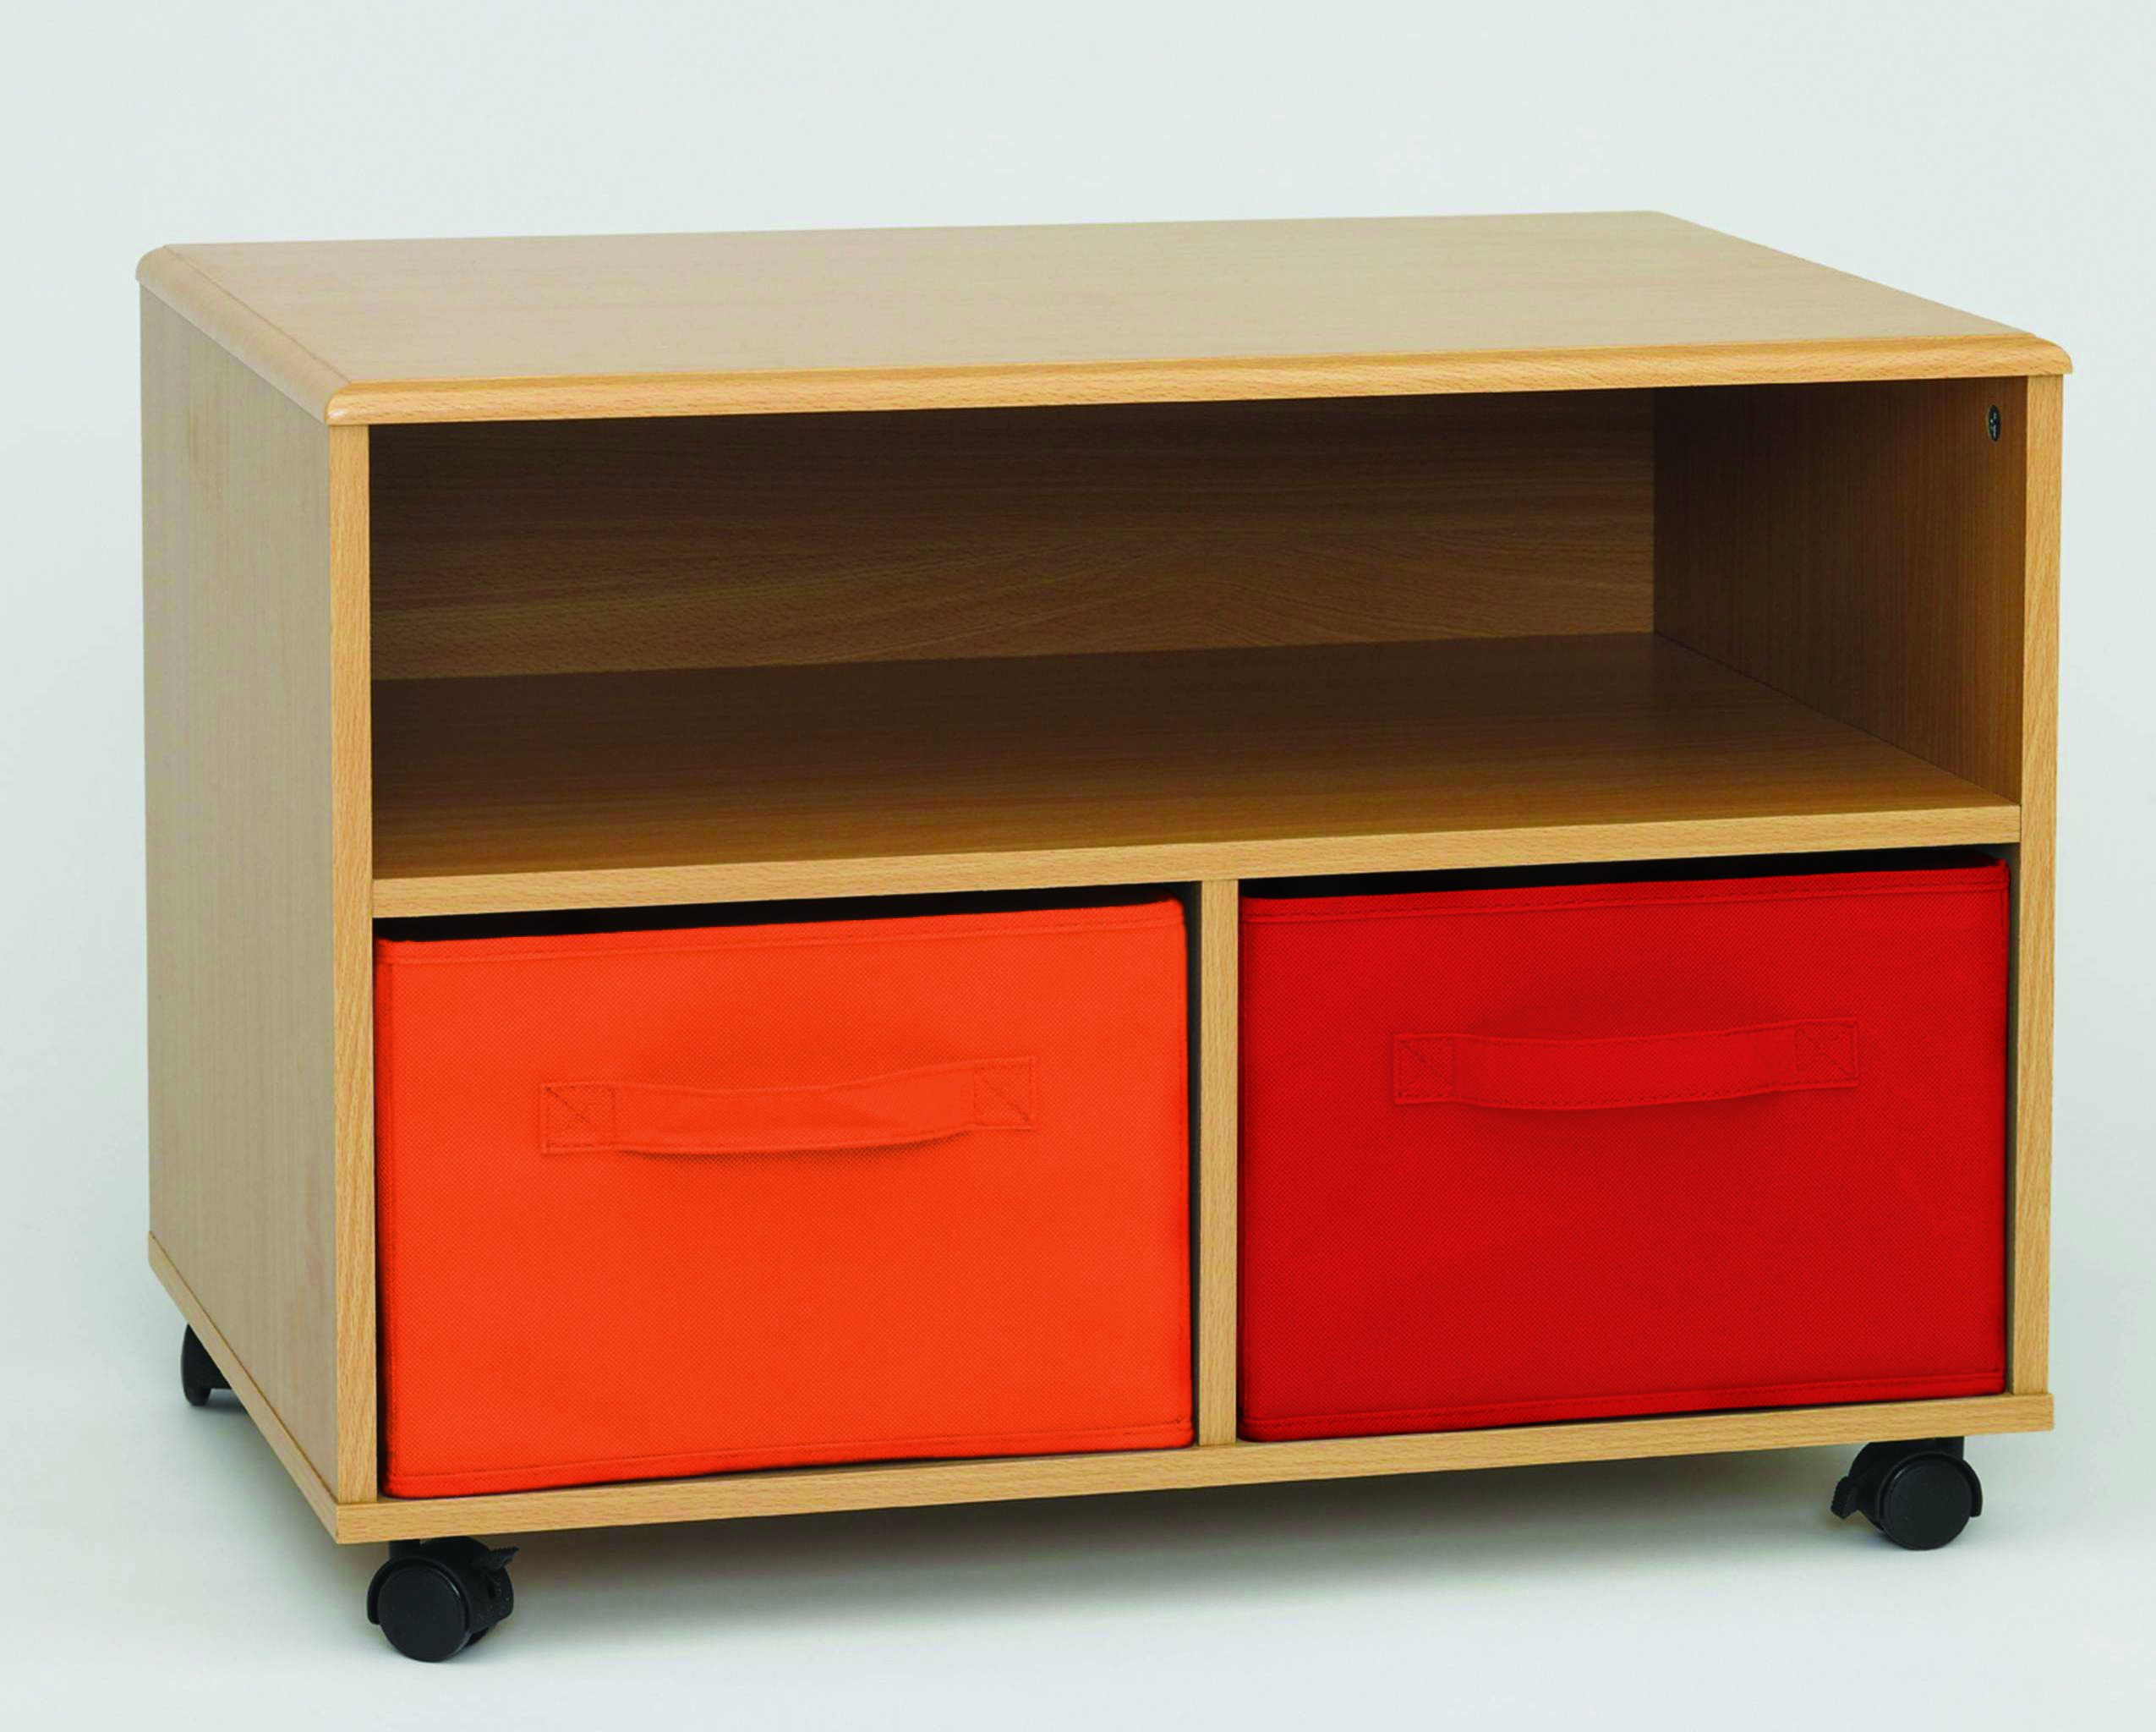 4D Concepts Crawford Boys TV Cart - TV cart with durable casters Removable drawers in Red and Orange Rolled edges with durable beech PVC laminate - tv-stands, living-room-furniture, living-room - 81n9pawil9L -